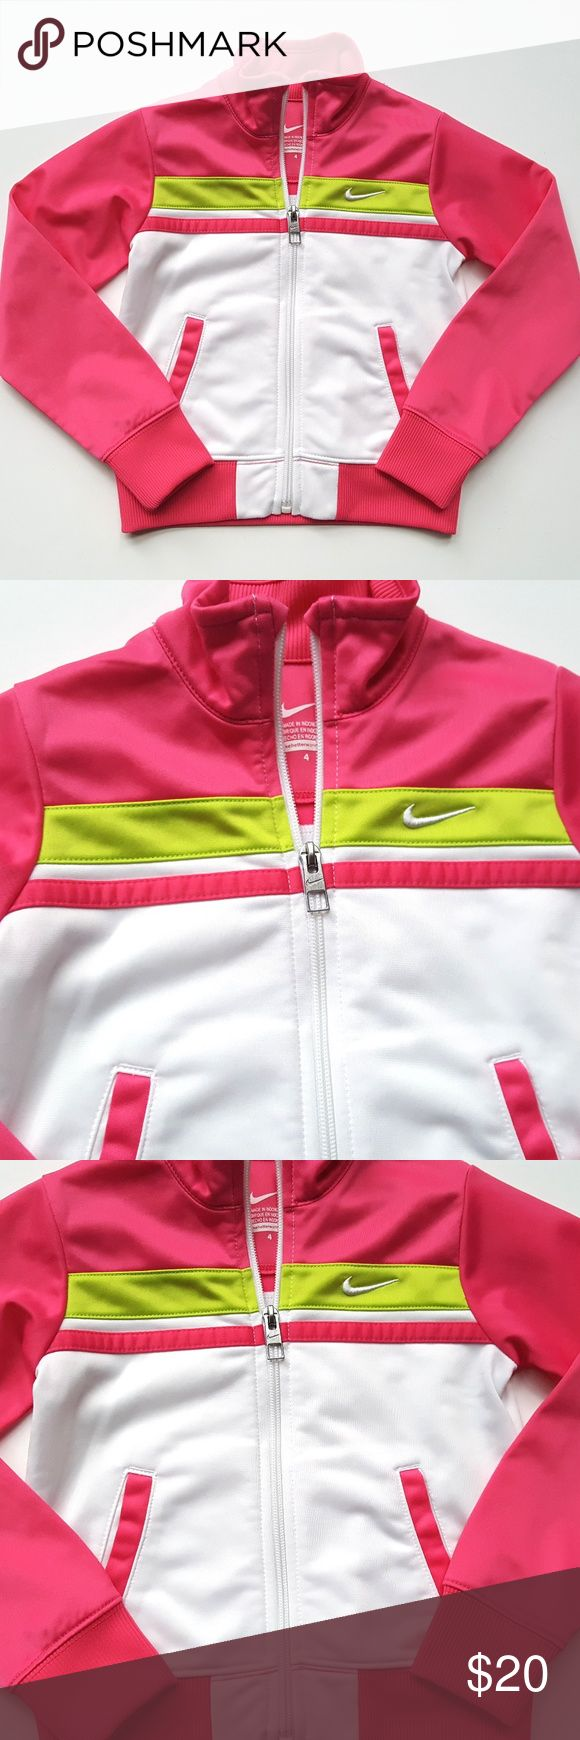 Nike Girls Pink & White Zip up Track Jacket Nike Girls Pink & White Zip up Track Jacket Athletic Sport  Size 4  Condition: EUC  My items come from a smoke-free household, we do have a kitty, so an occasional hair may occur! Nike Jackets & Coats